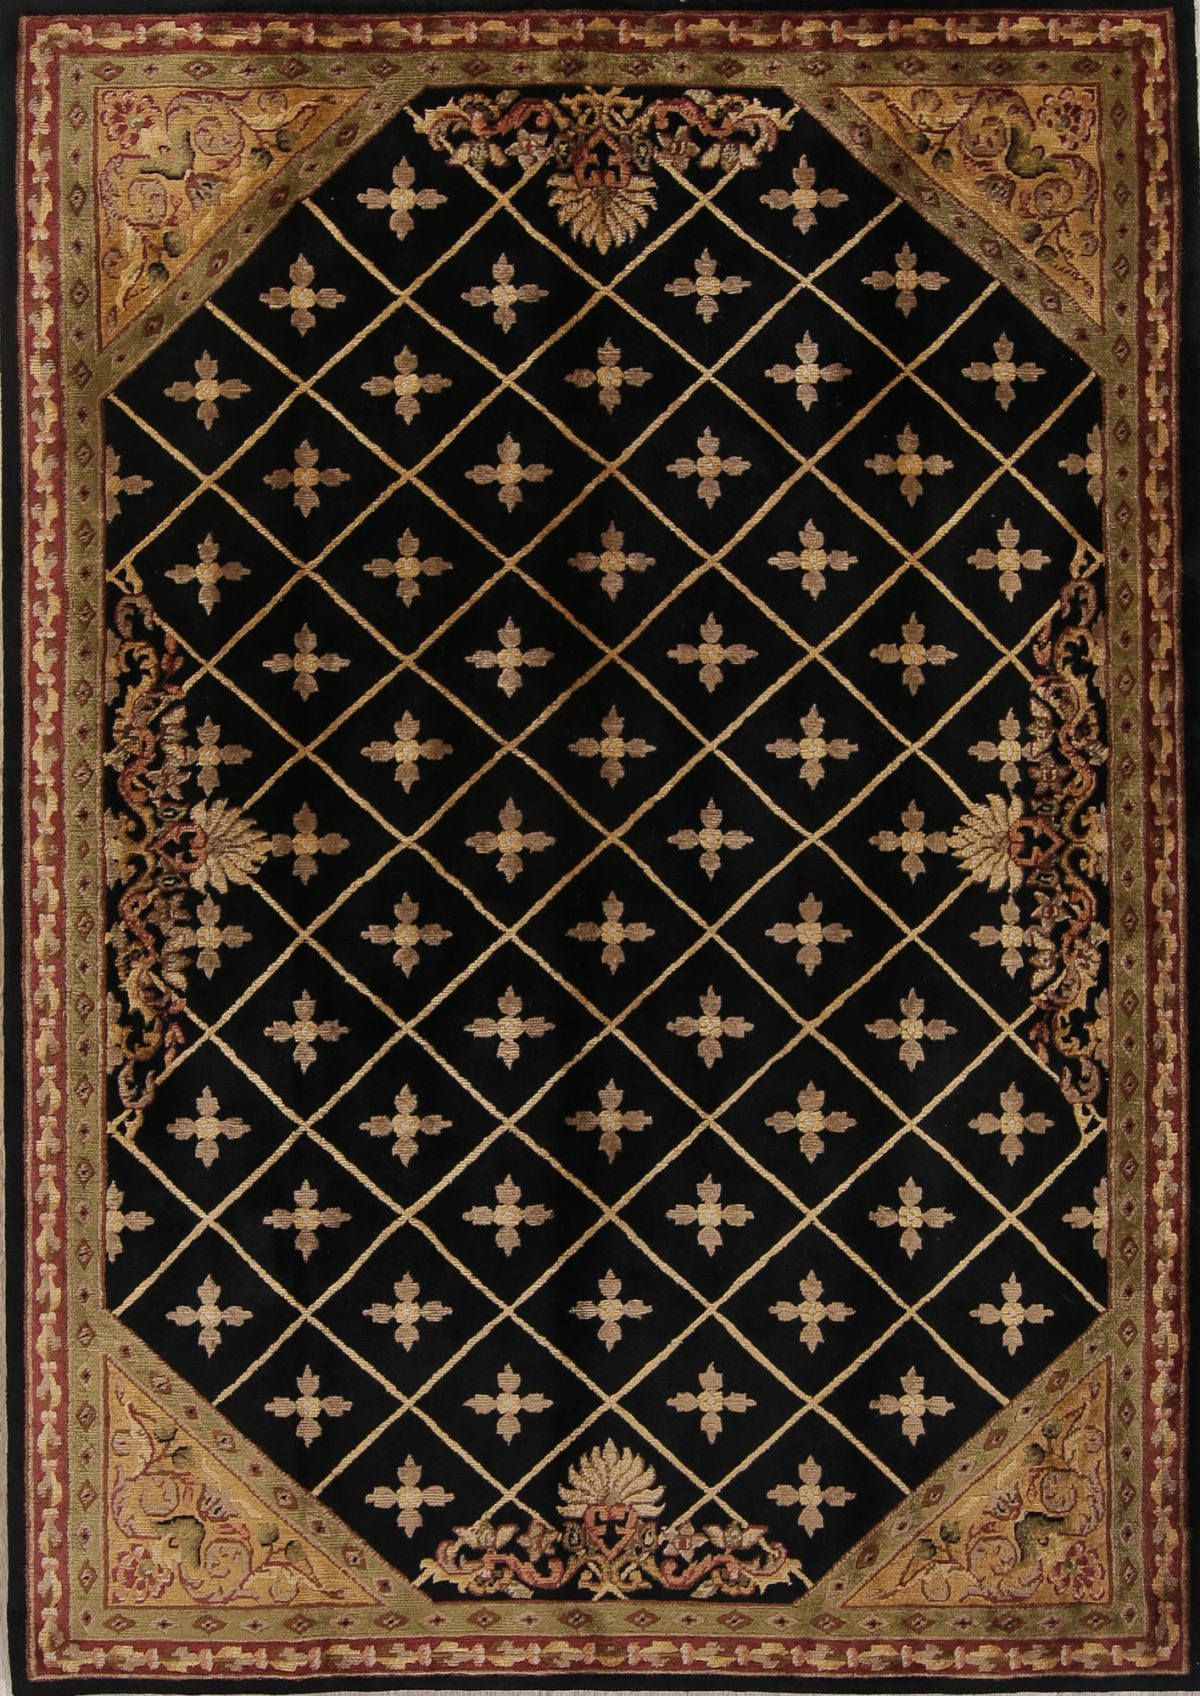 Geometric Black Nepal Indian Oriental Hand-Knotted Area Rug Wool 6x9